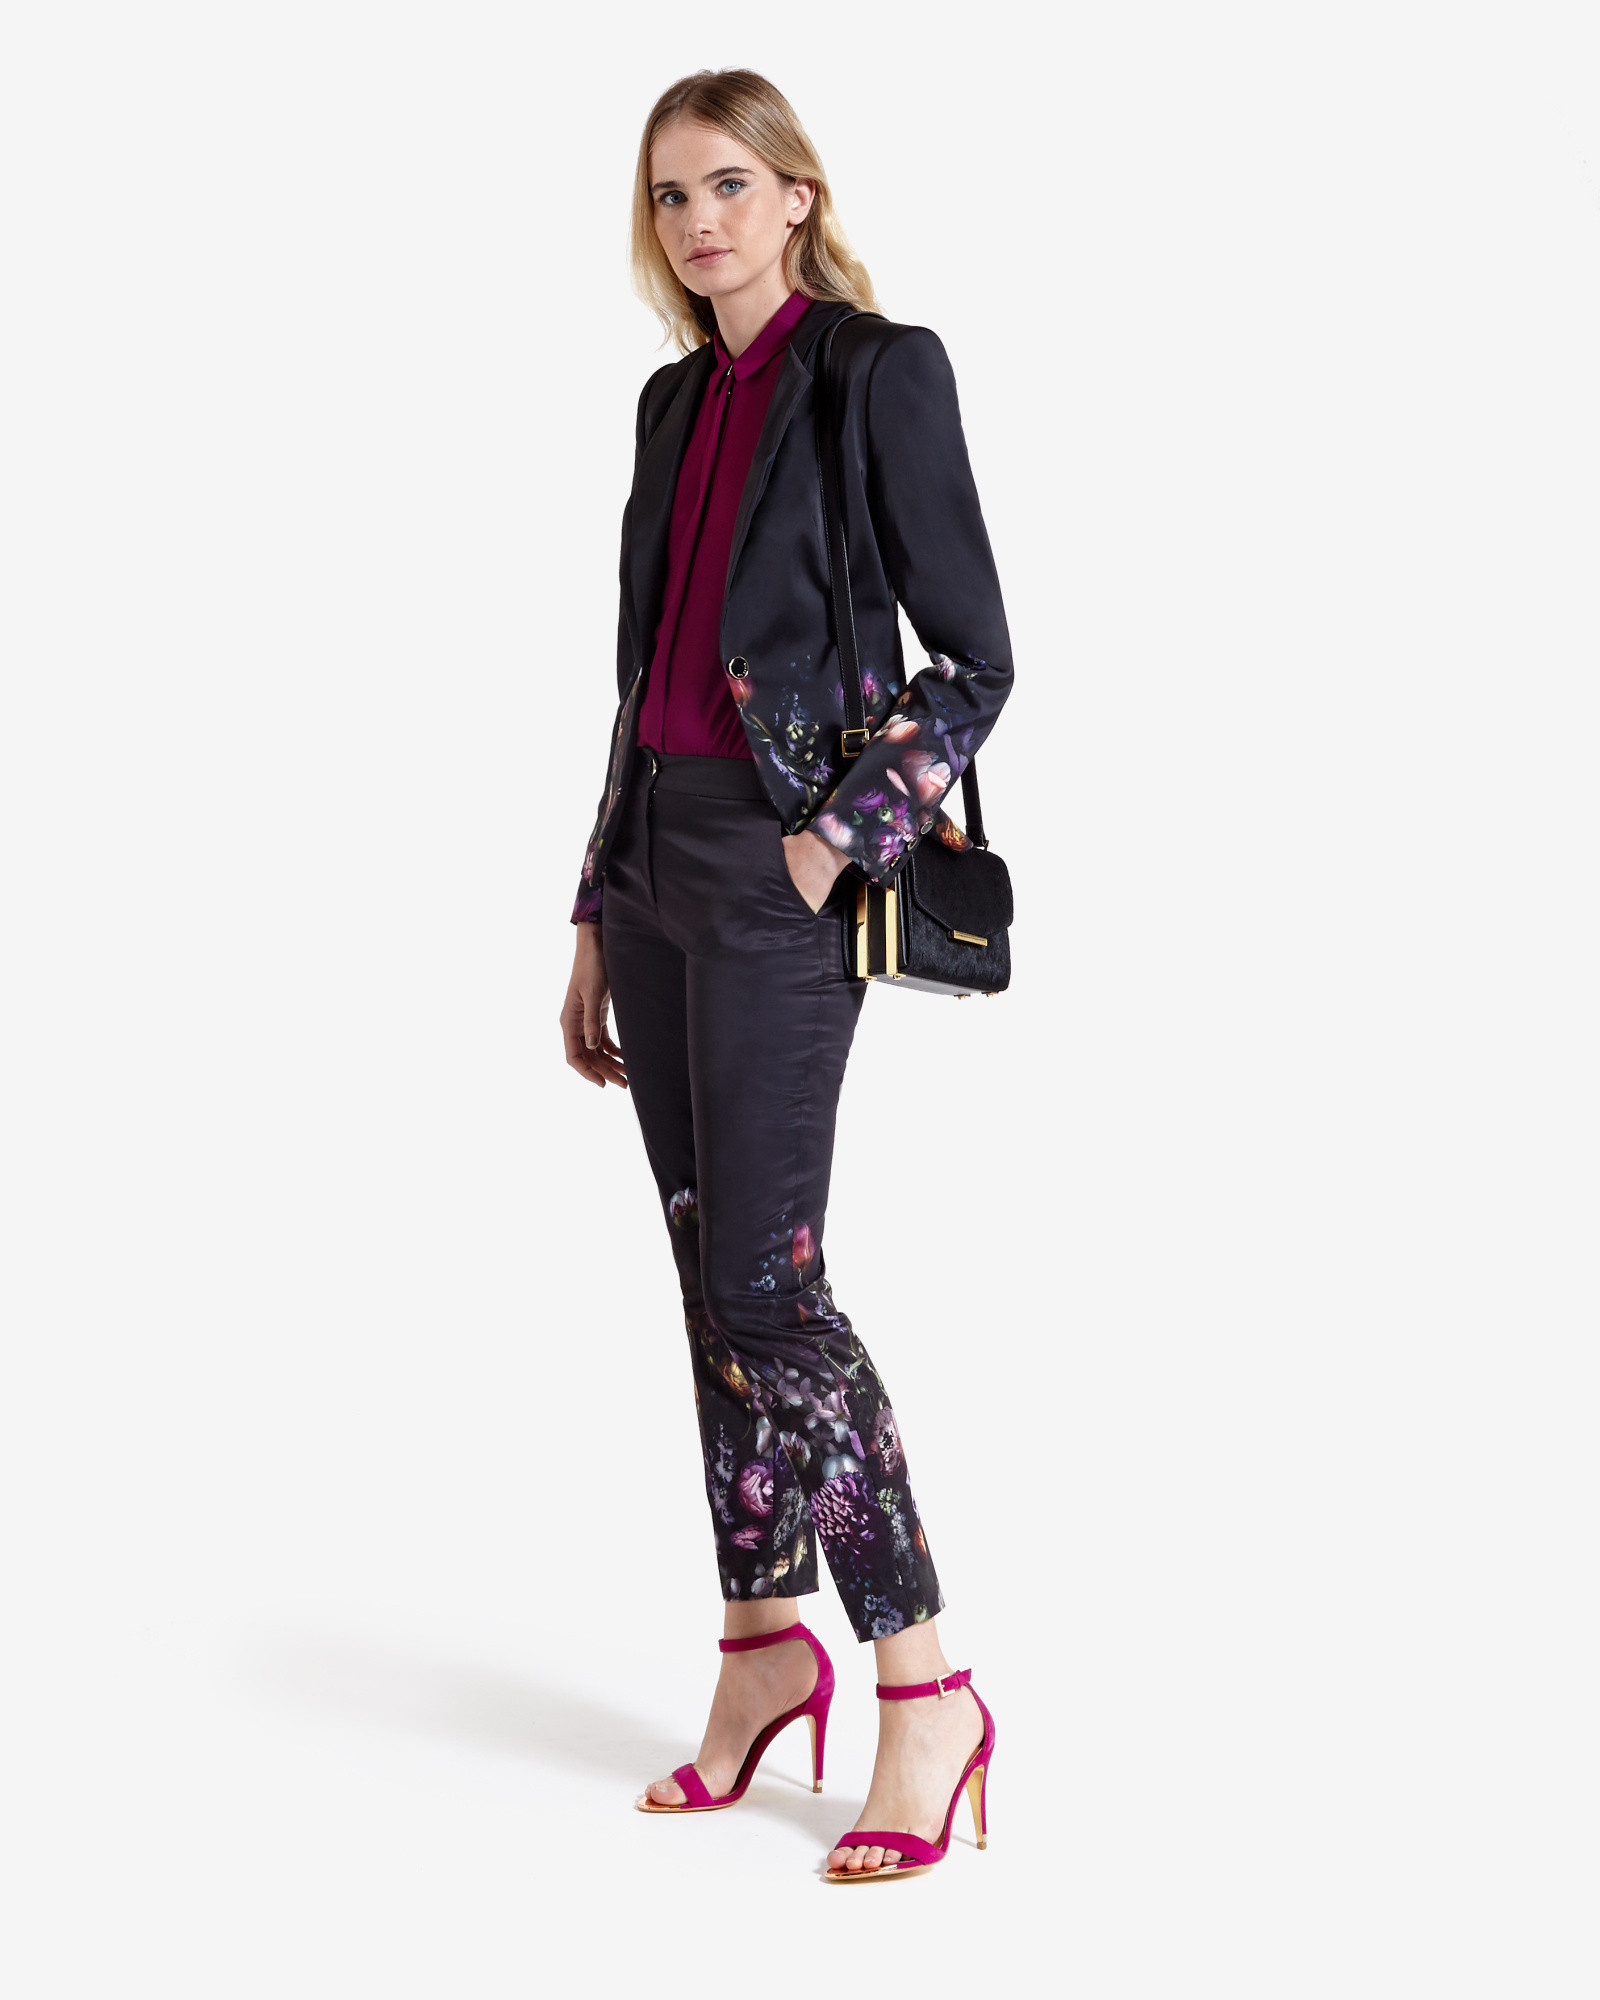 84e8afbad4d7 Lyst - Ted Baker Shadow Floral Trousers